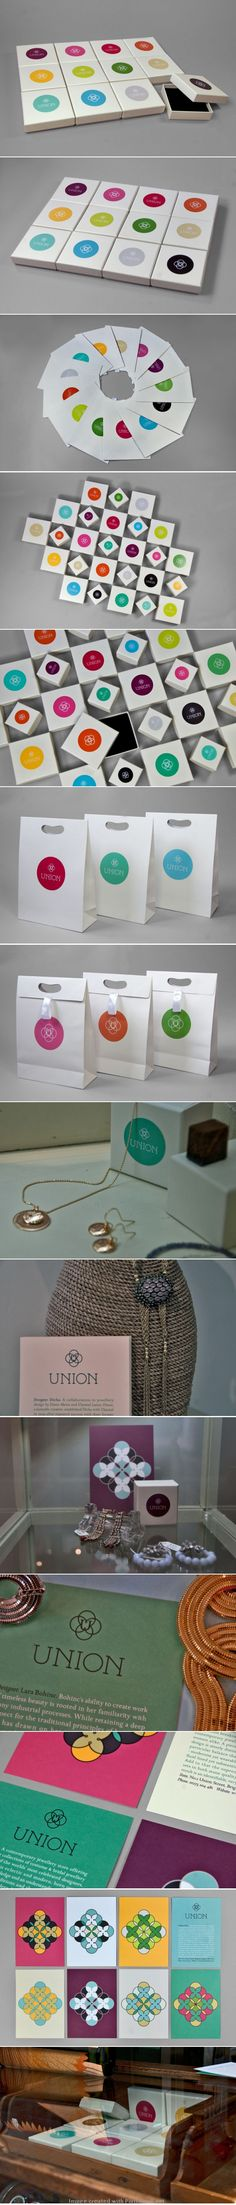 Union jewellery identity packaging branding by Red Design PD